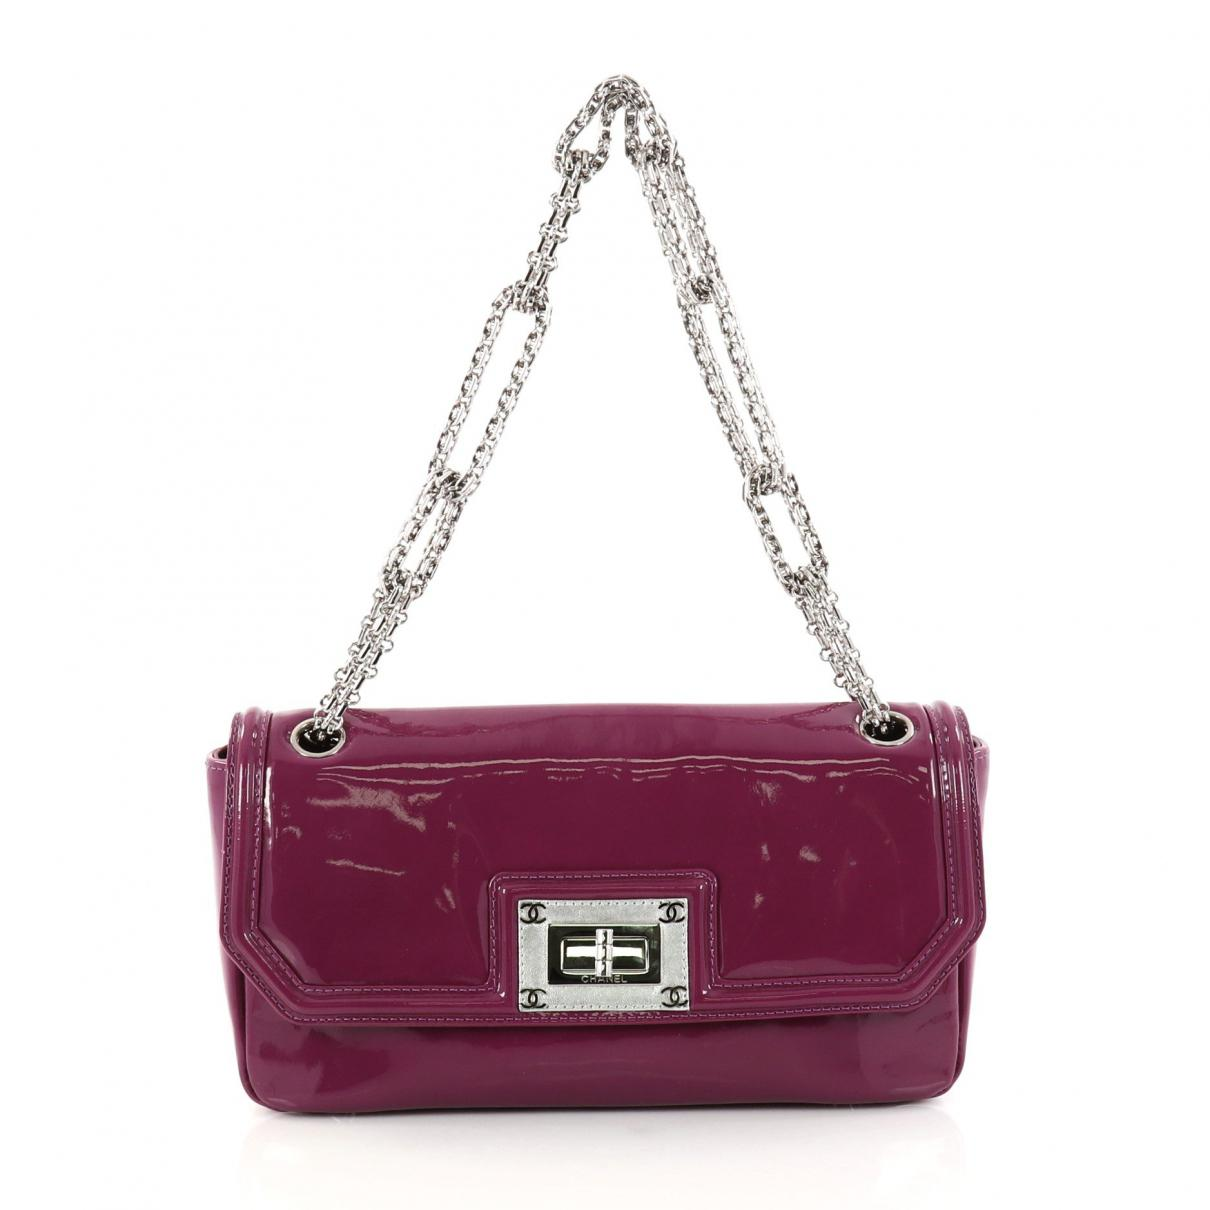 Lyst - Chanel Purple Leather Handbag in Purple 7a20eb3f25